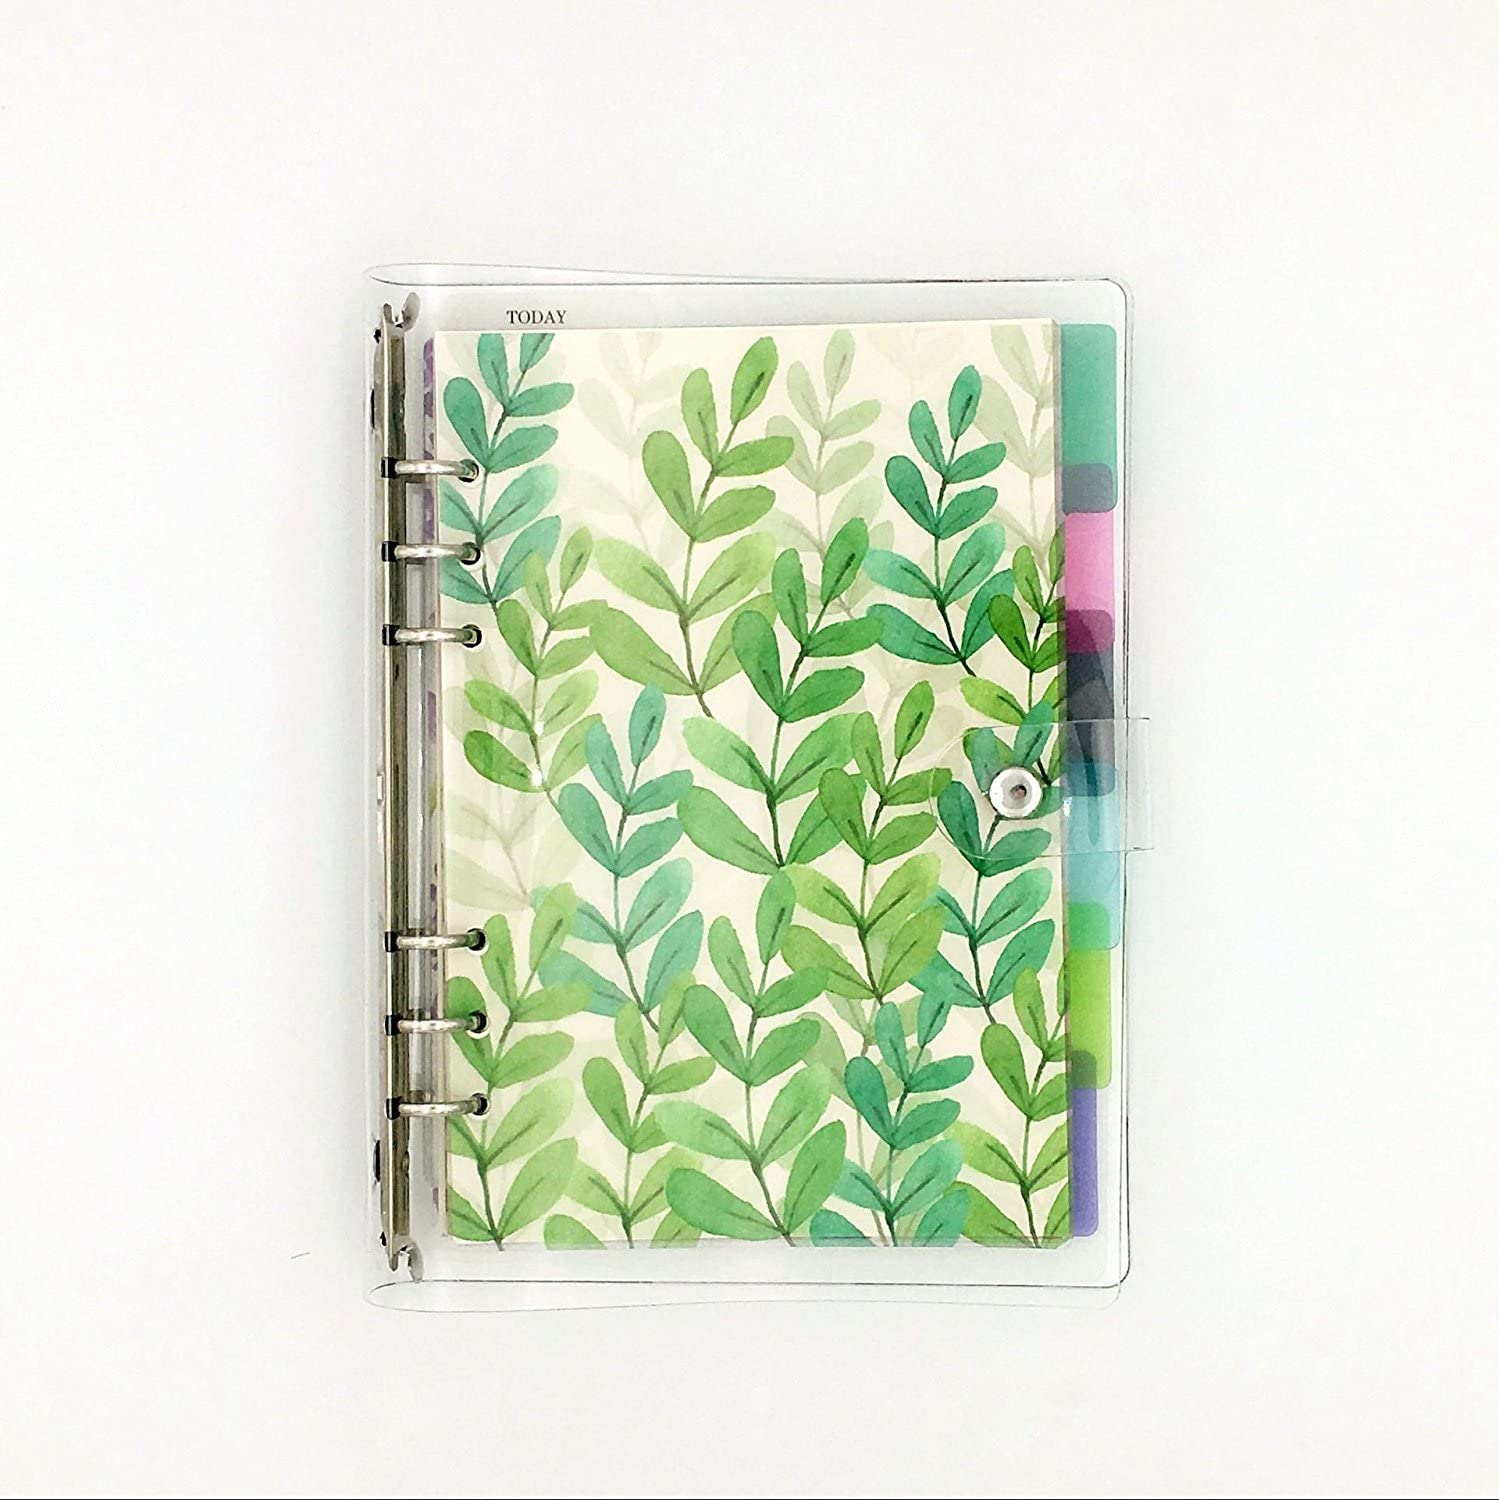 A5 6-Ring Loose Leaf Binder Journal w/ 80 Insert Pages(Dot Grid/Square Grid/Ruled/Blank) + 6 Index Divider Tabs + 1 Clear Page Maker + 1 Ziplock Pouch Included, Refillable